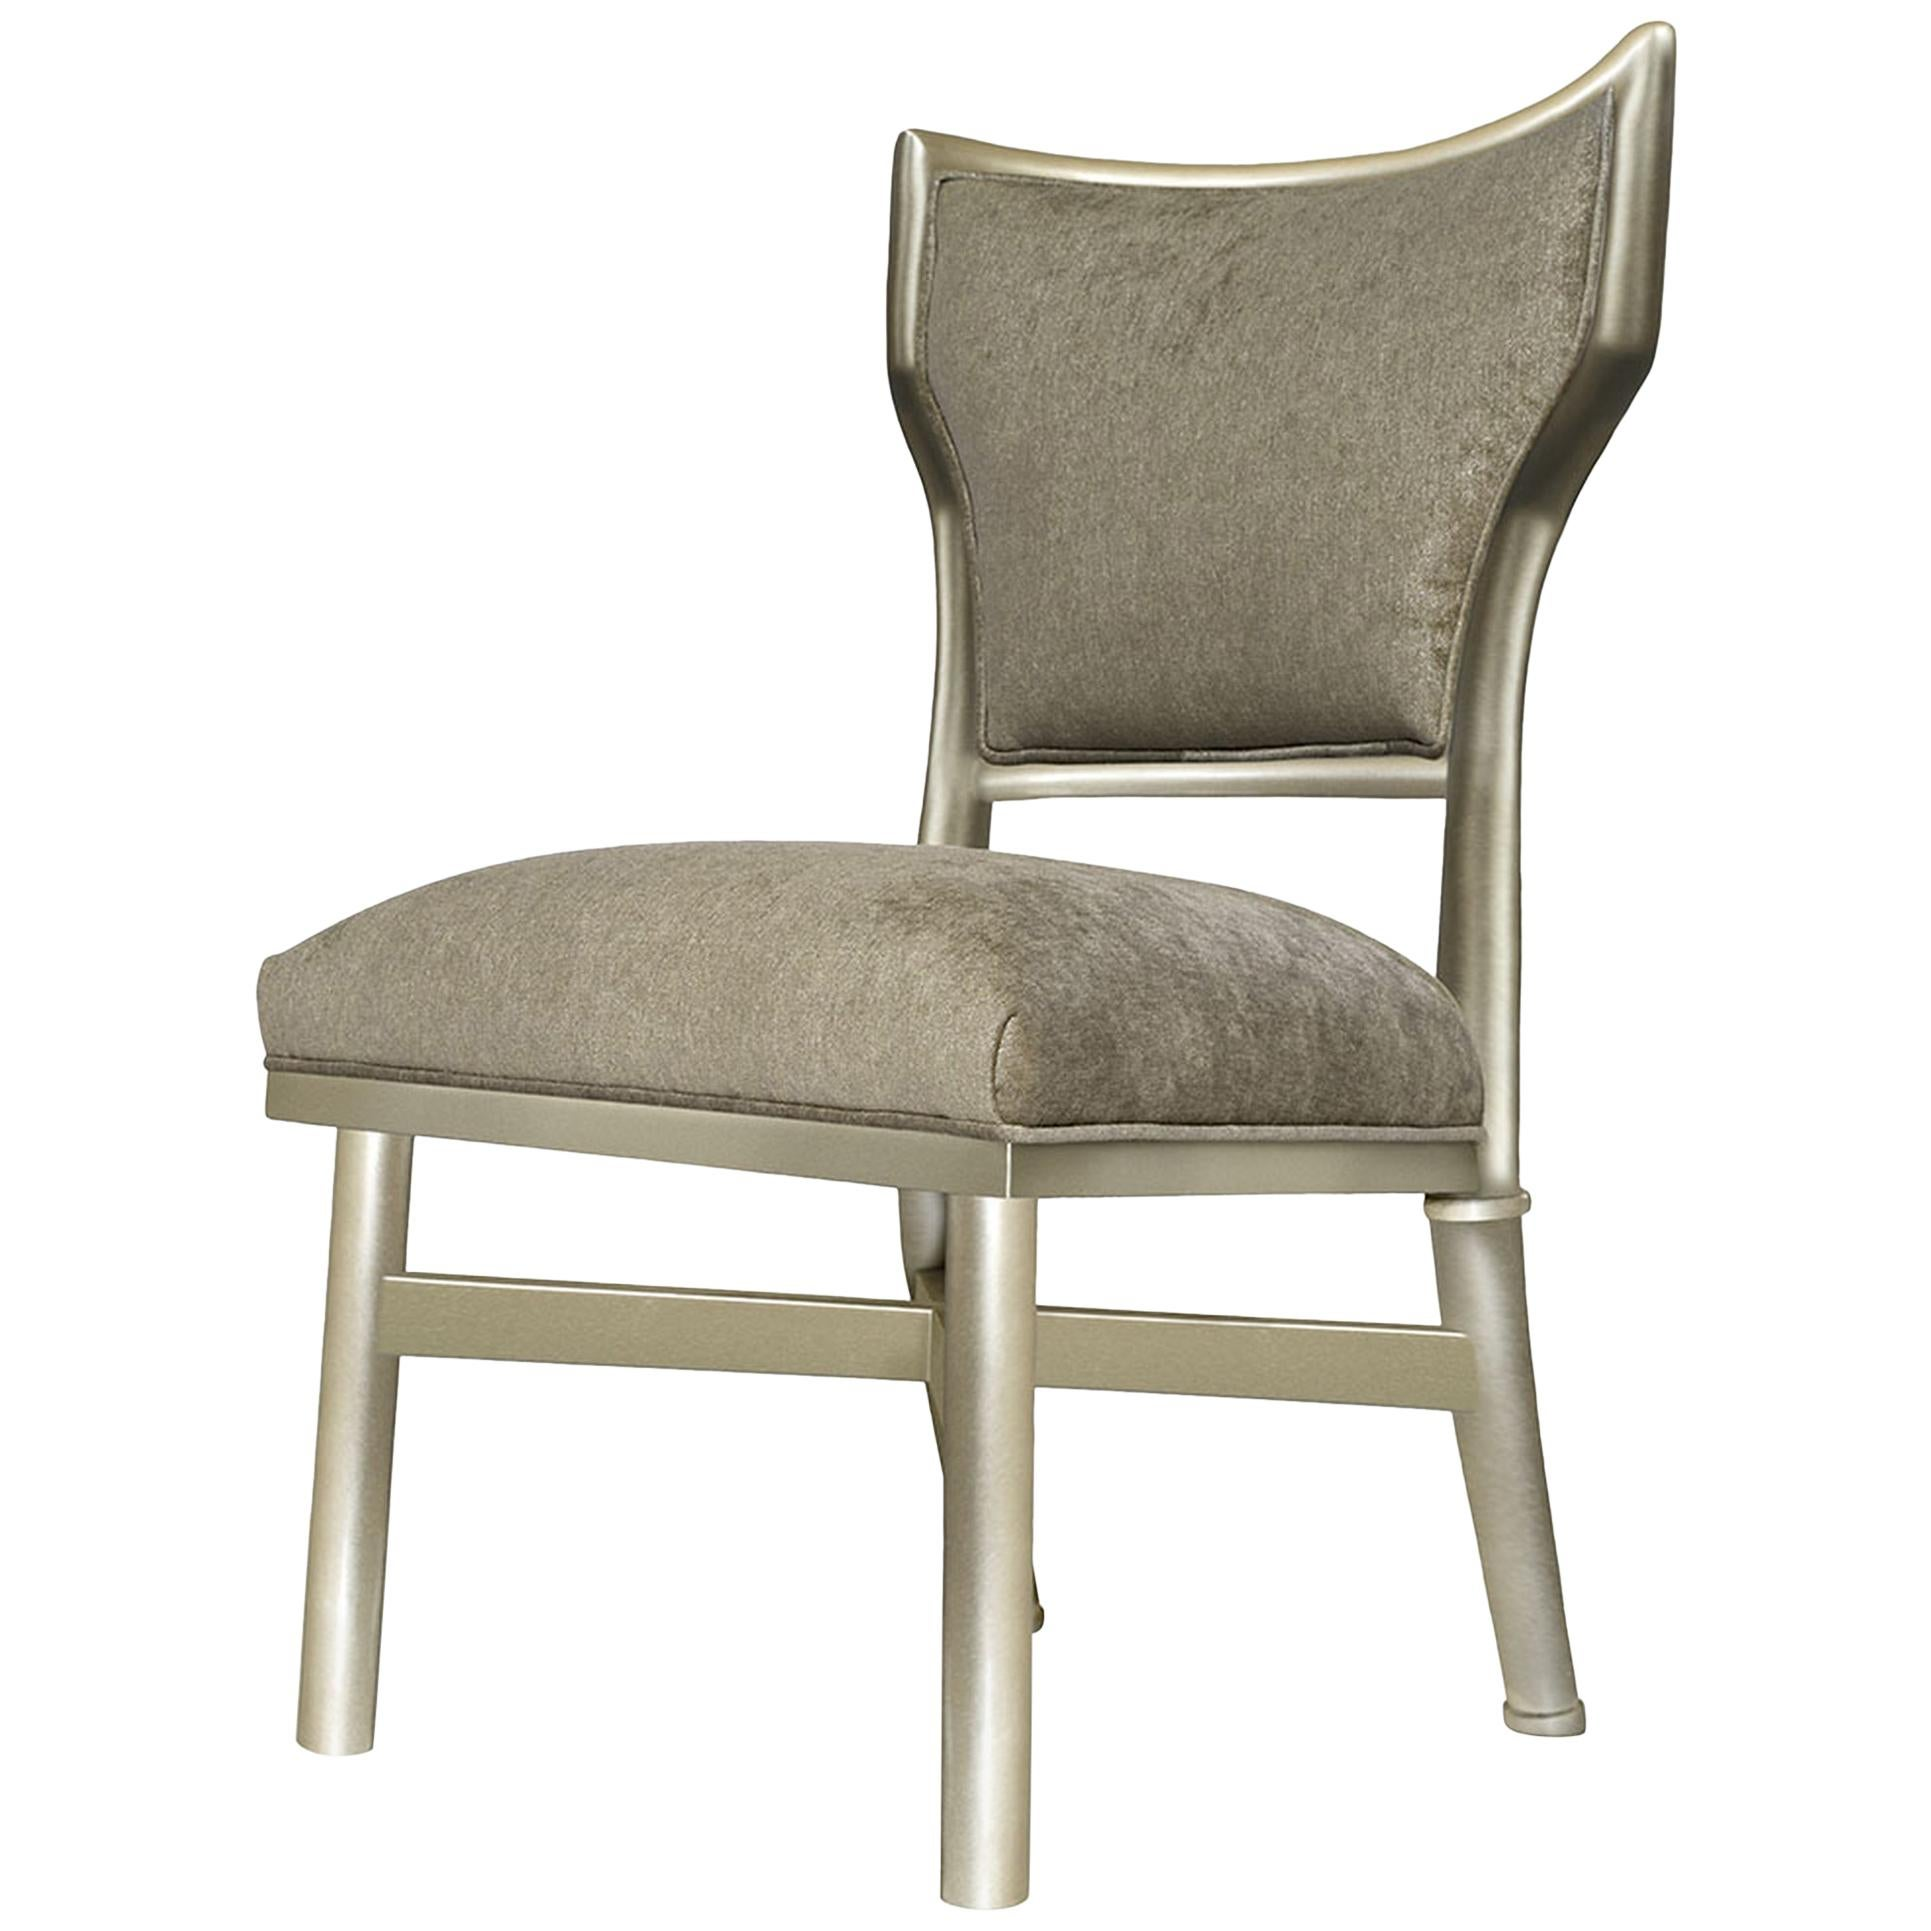 Crawford Desk Chair in Champagne Leaf & Gray by Innova Luxuxy Group